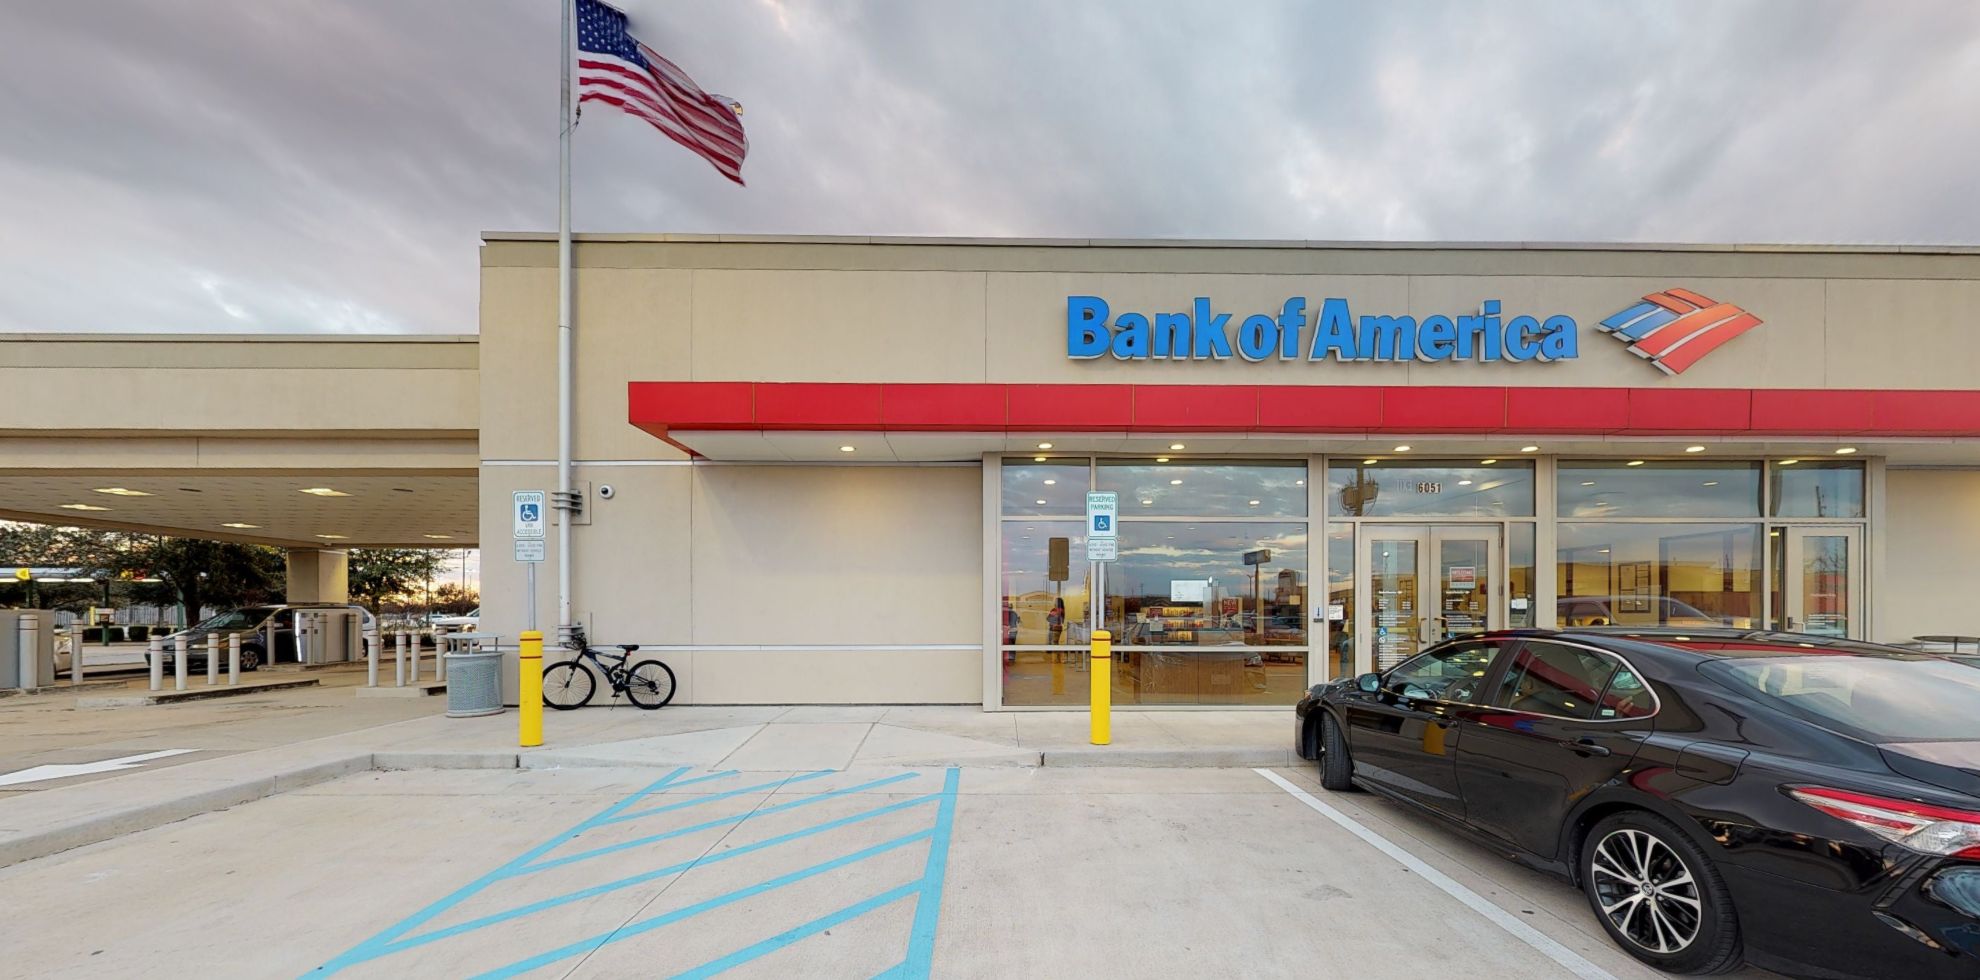 Bank of America financial center with drive-thru ATM   6051 N Fry Rd, Katy, TX 77449